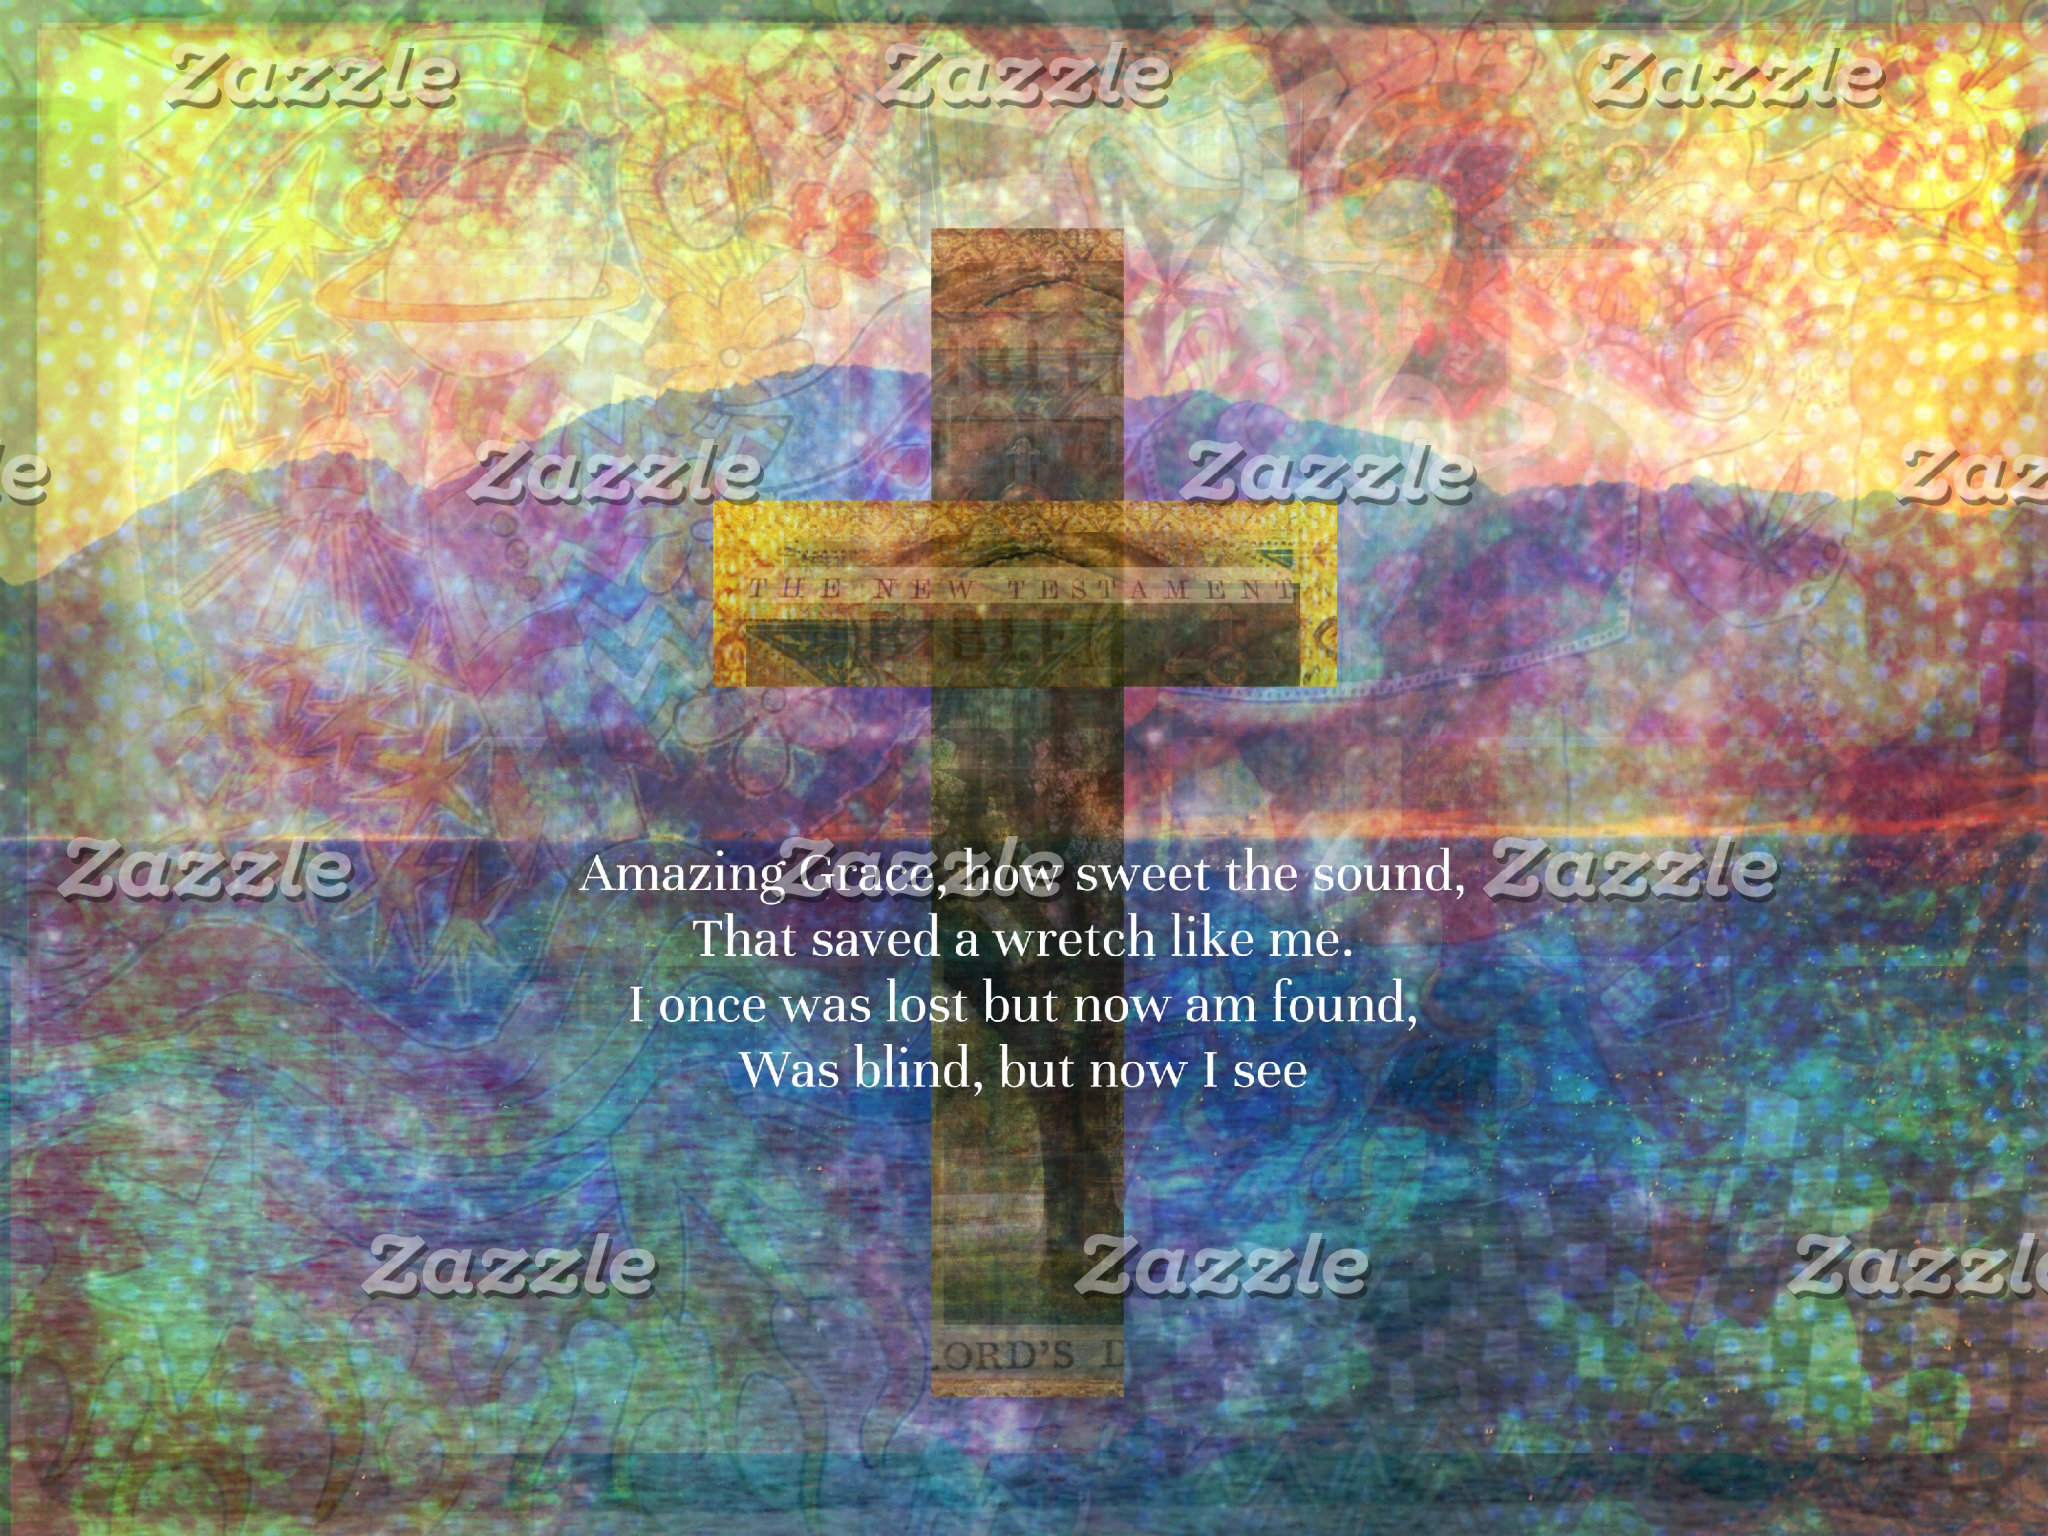 Amazing Grace, how sweet the sound,